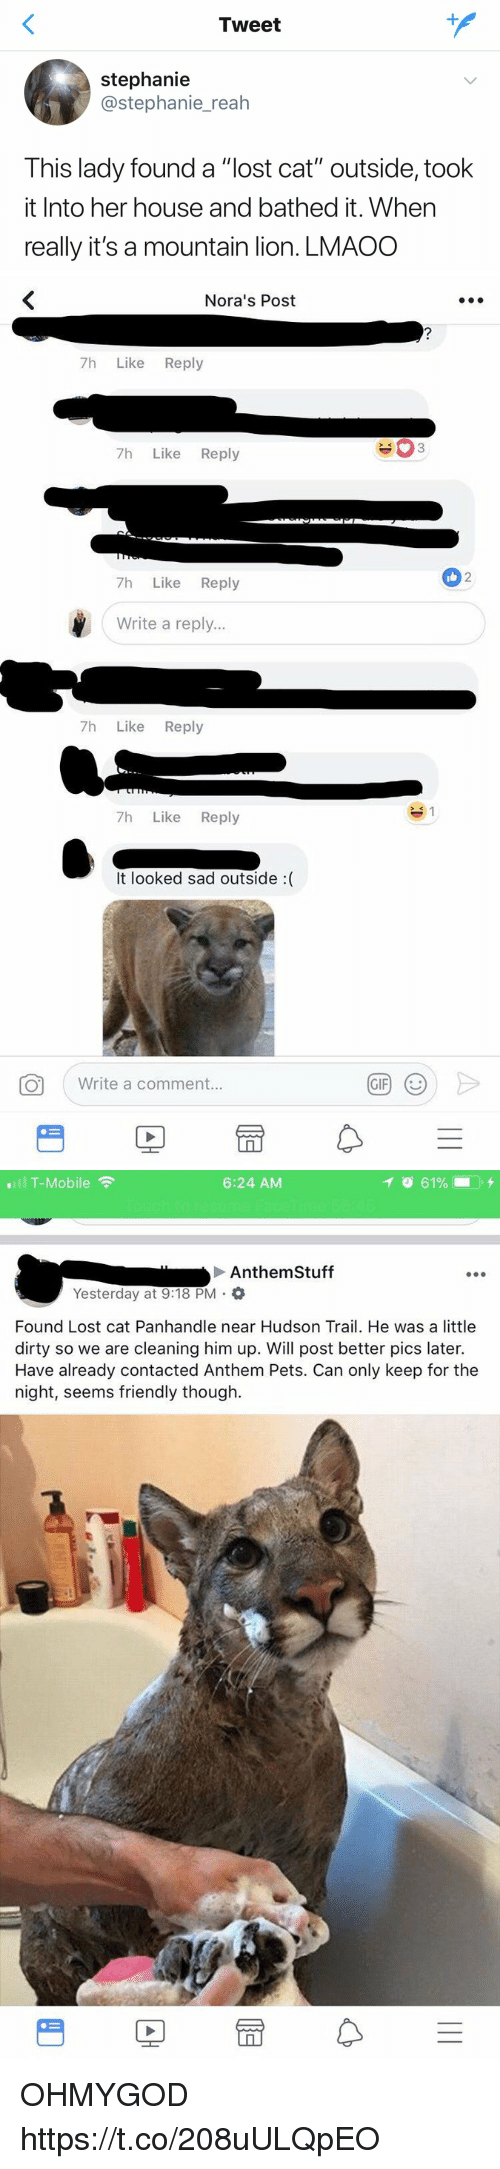 "Gif, T-Mobile, and Lost: Tweet  stephanie  @stephanie_reah  This lady found a ""lost cat"" outside, took  it Into her house and bathed it. When  really it's a mountain lion. LMAOO   Nora's Post  7h Like Reply  7h Like Reply  2  7h Like Reply  Write a reply...  7h Like Reply  7h Like Reply  It looked sad outside :(  Write a comment.  GIF   .111 T-Mobile令  6:24 AM  イ  61%- . +  Anthem Stuff  Yesterday at 9:18 PM .  Found Lost cat Panhandle near Hudson Trail. He was a little  dirty so we are cleaning him up. Will post better pics later.  Have already contacted Anthem Pets. Can only keep for the  night, seems friendly though.  PE OHMYGOD https://t.co/208uULQpEO"